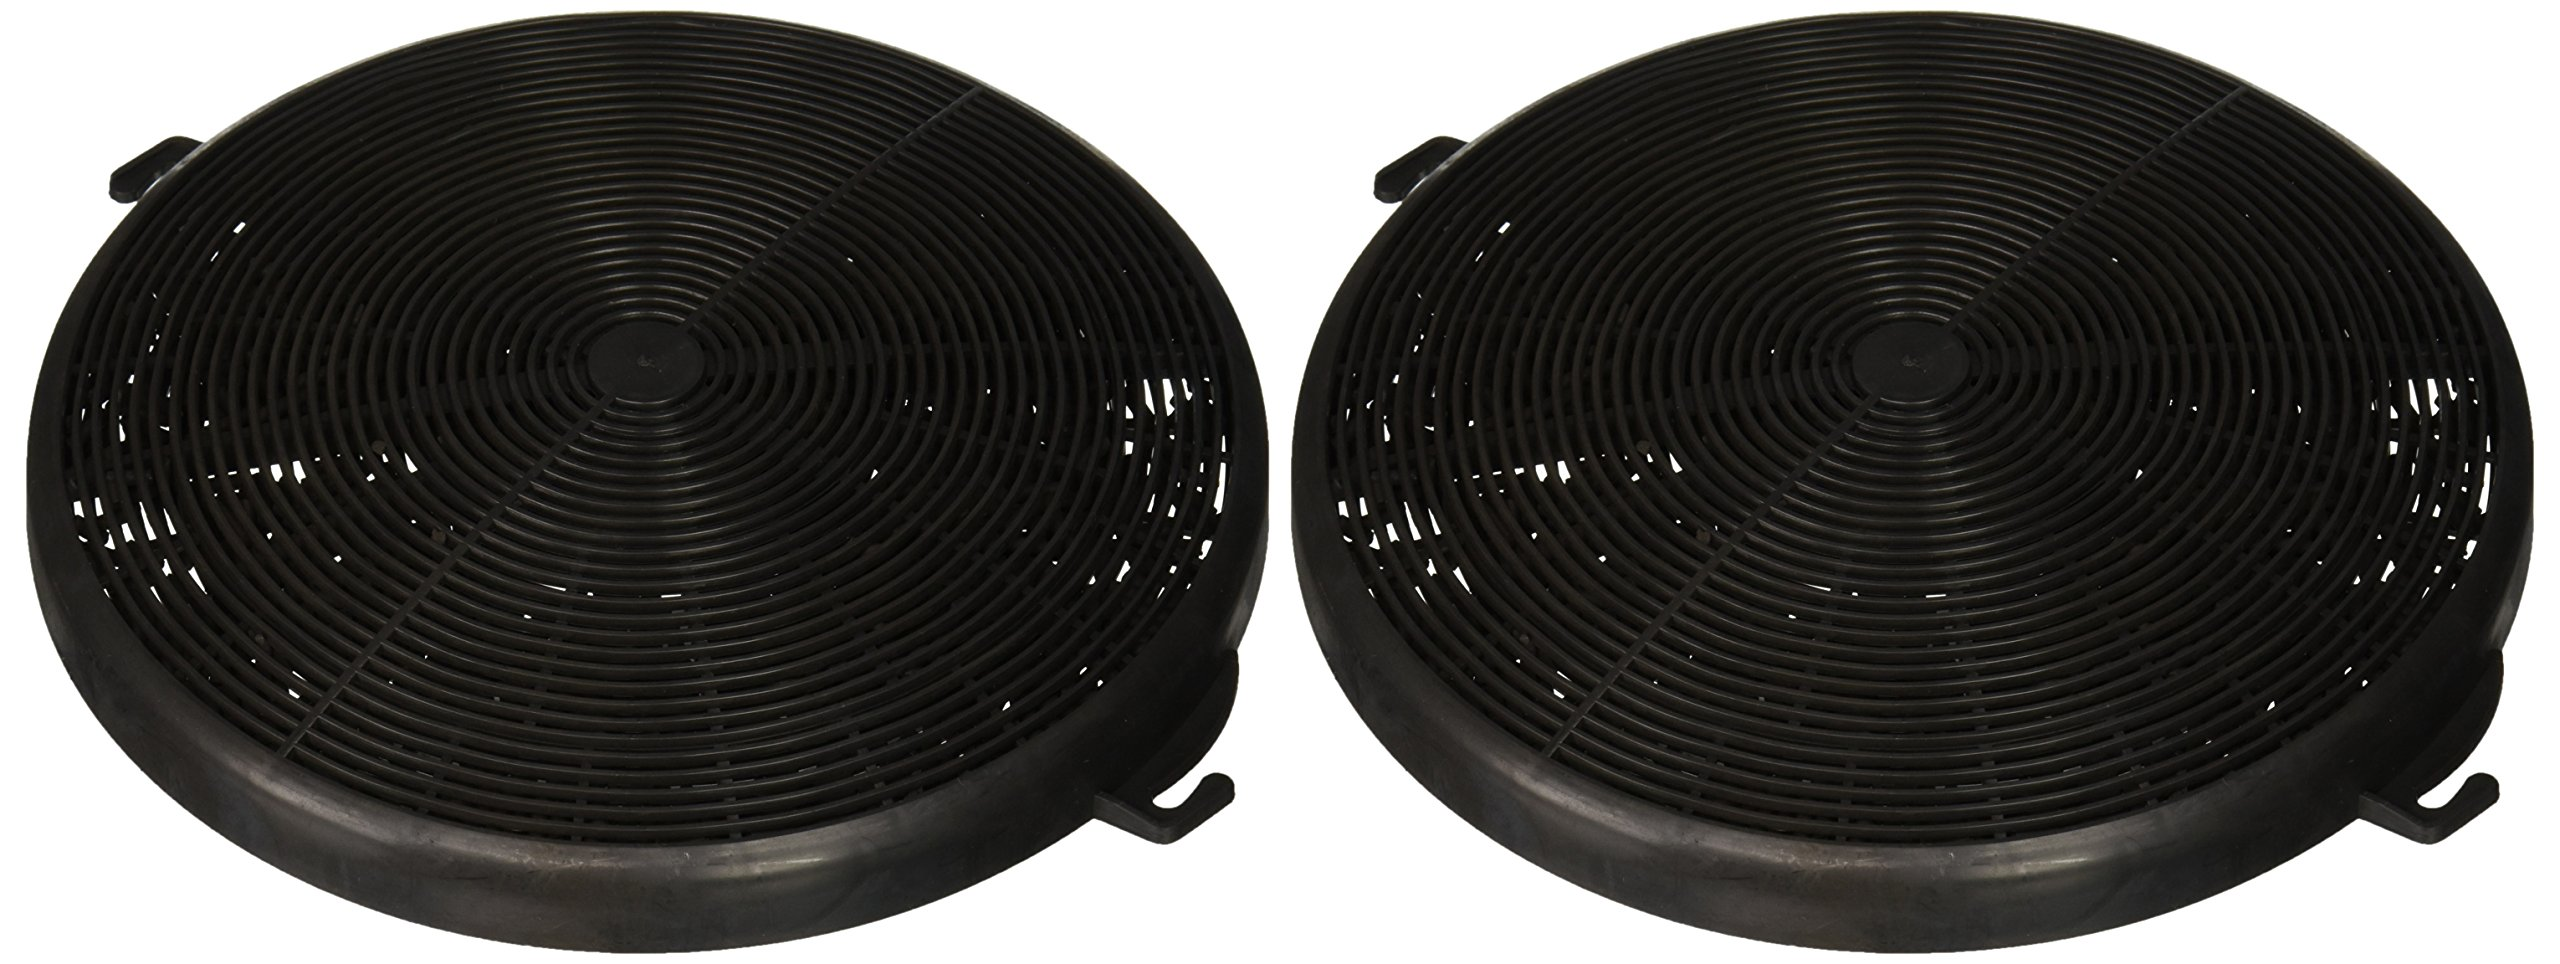 Z Line One Set of Carbon Filters for Ductless Range Hoods